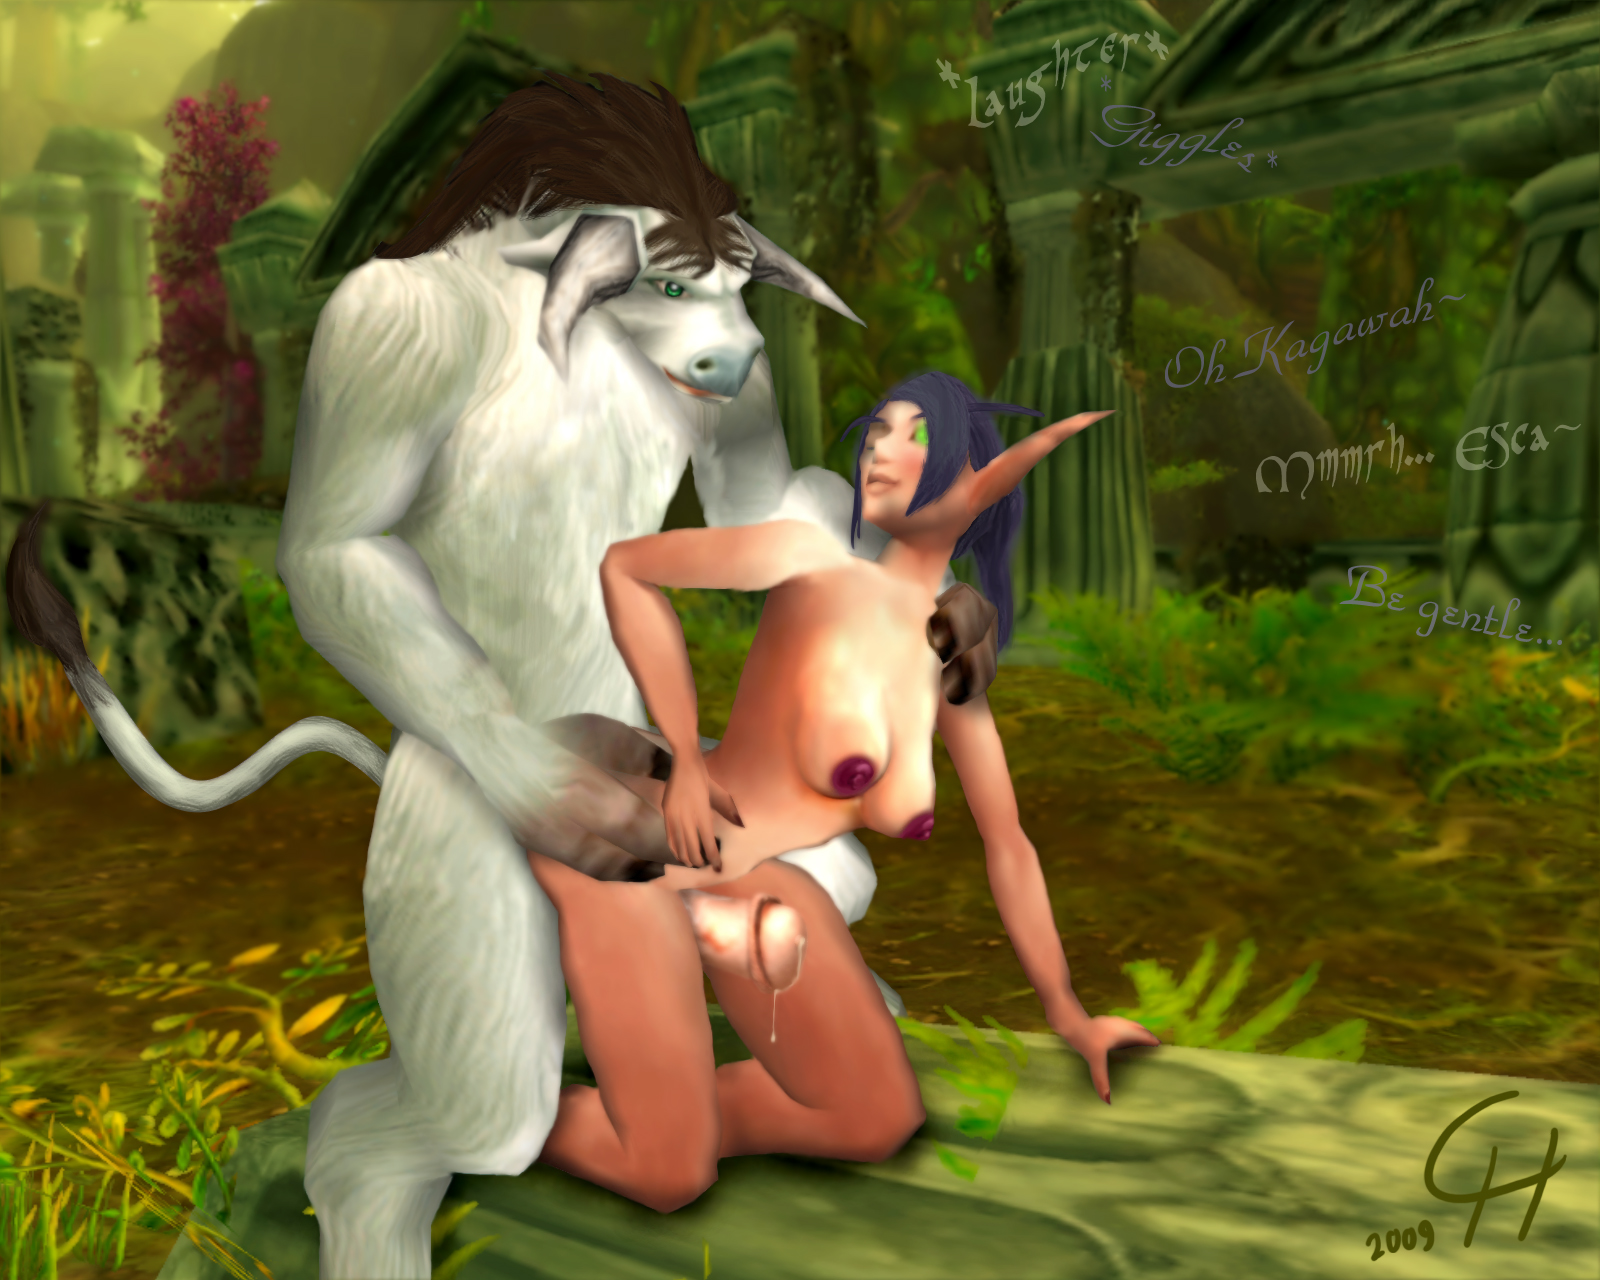 Tauren vs blood elf hentai erotica galleries